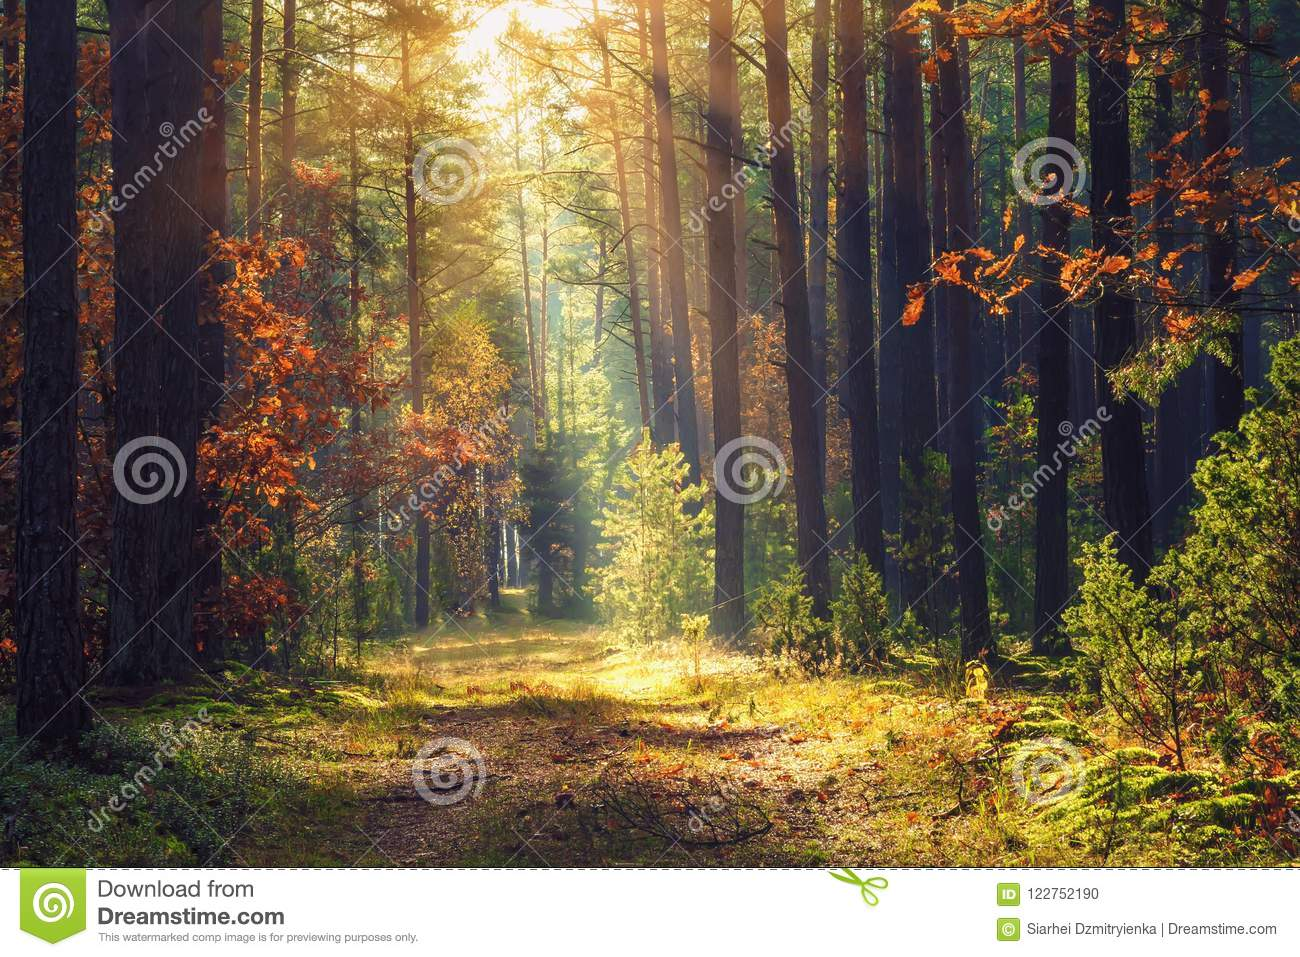 Autumn forest landscape. Colorful foliage on trees and grass shining on sunbeams. Amazing woodland. Scenery fall